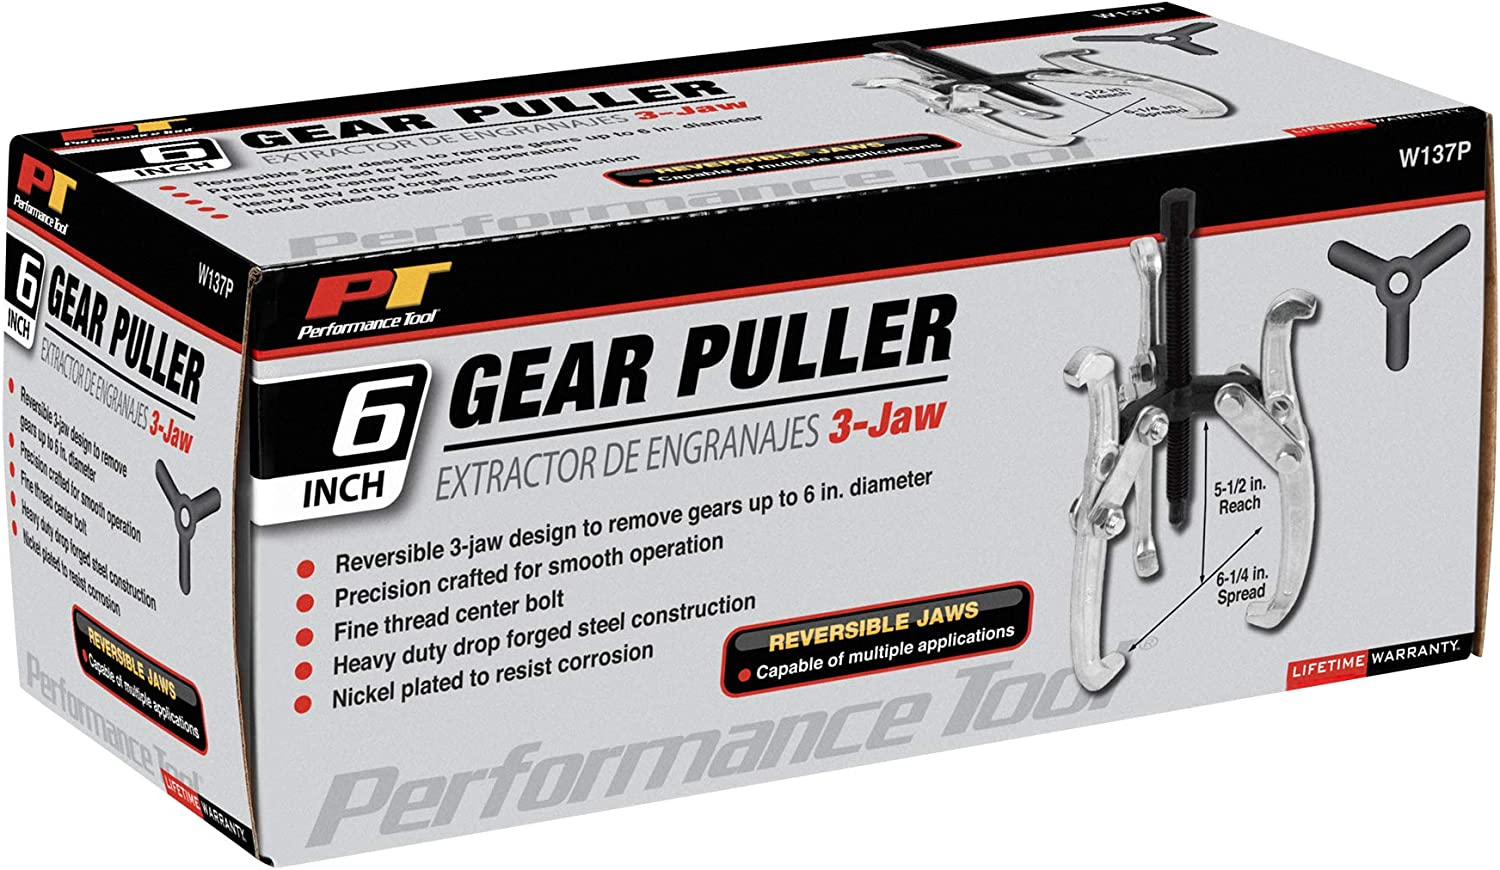 Performance Tool Jaw Grip Puller New W137P